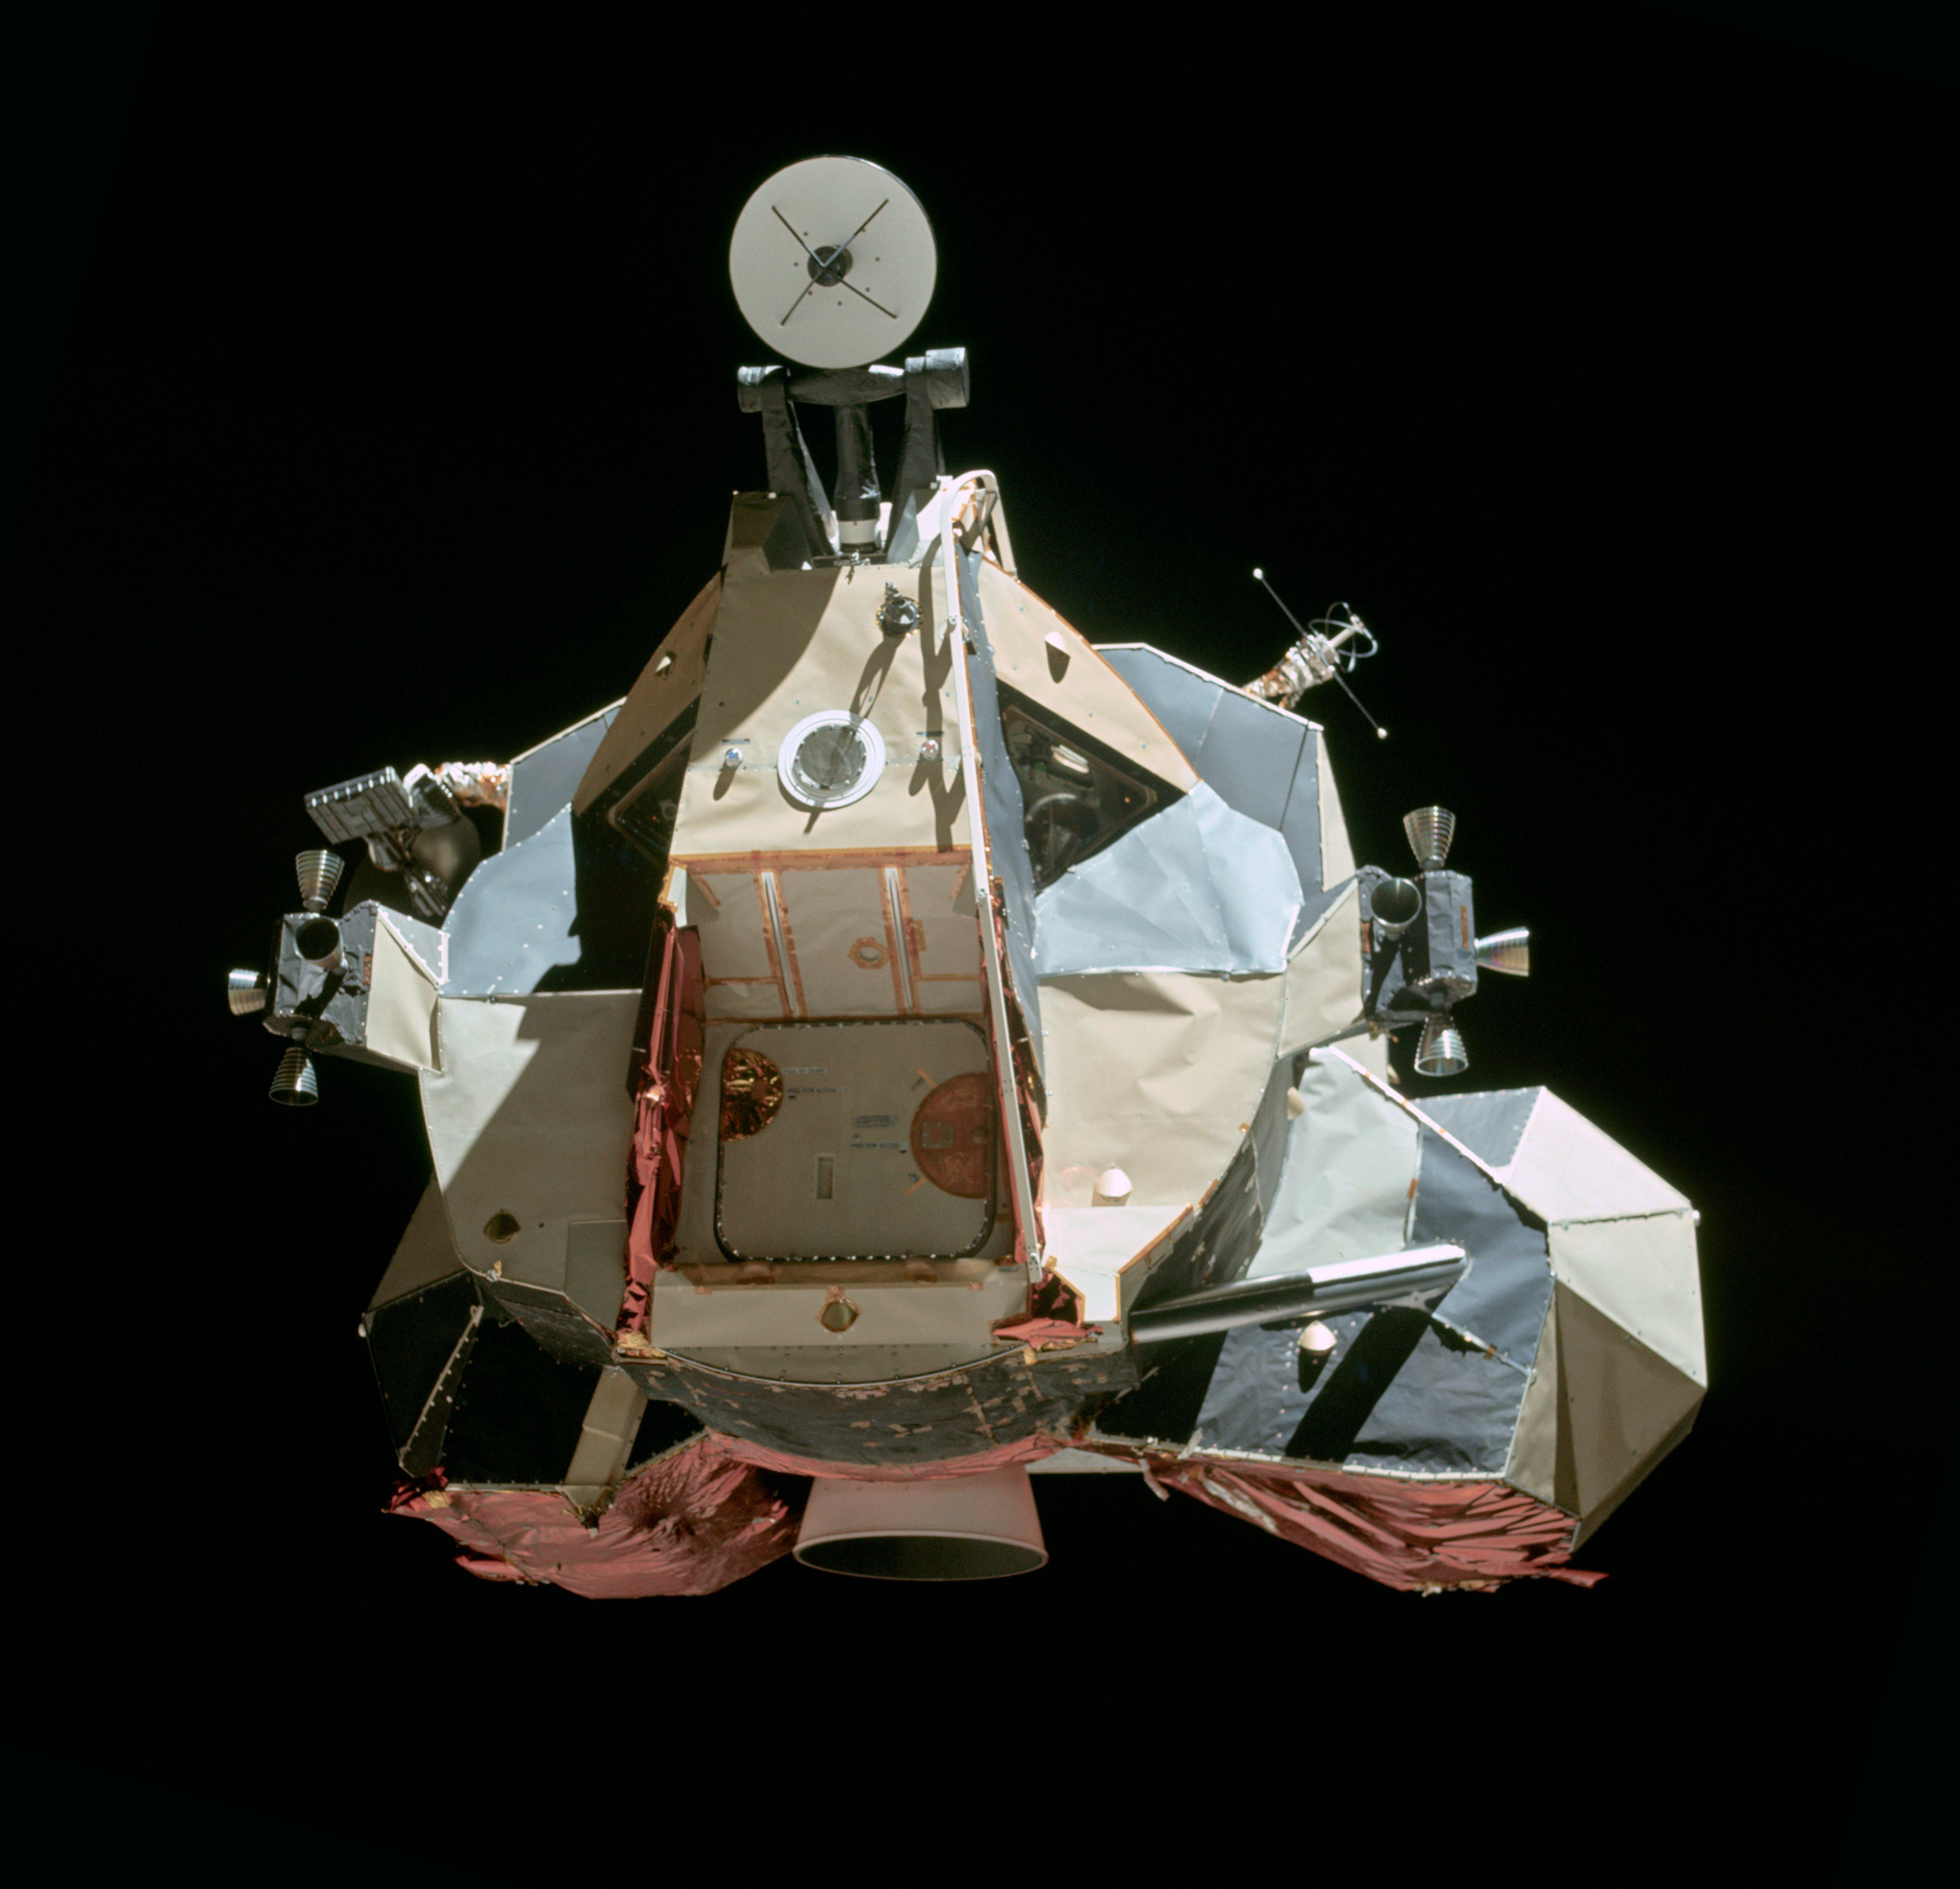 Ascent Stage of Apollo 17's Lunar Module, photographed from the Command Module before rendez-vous